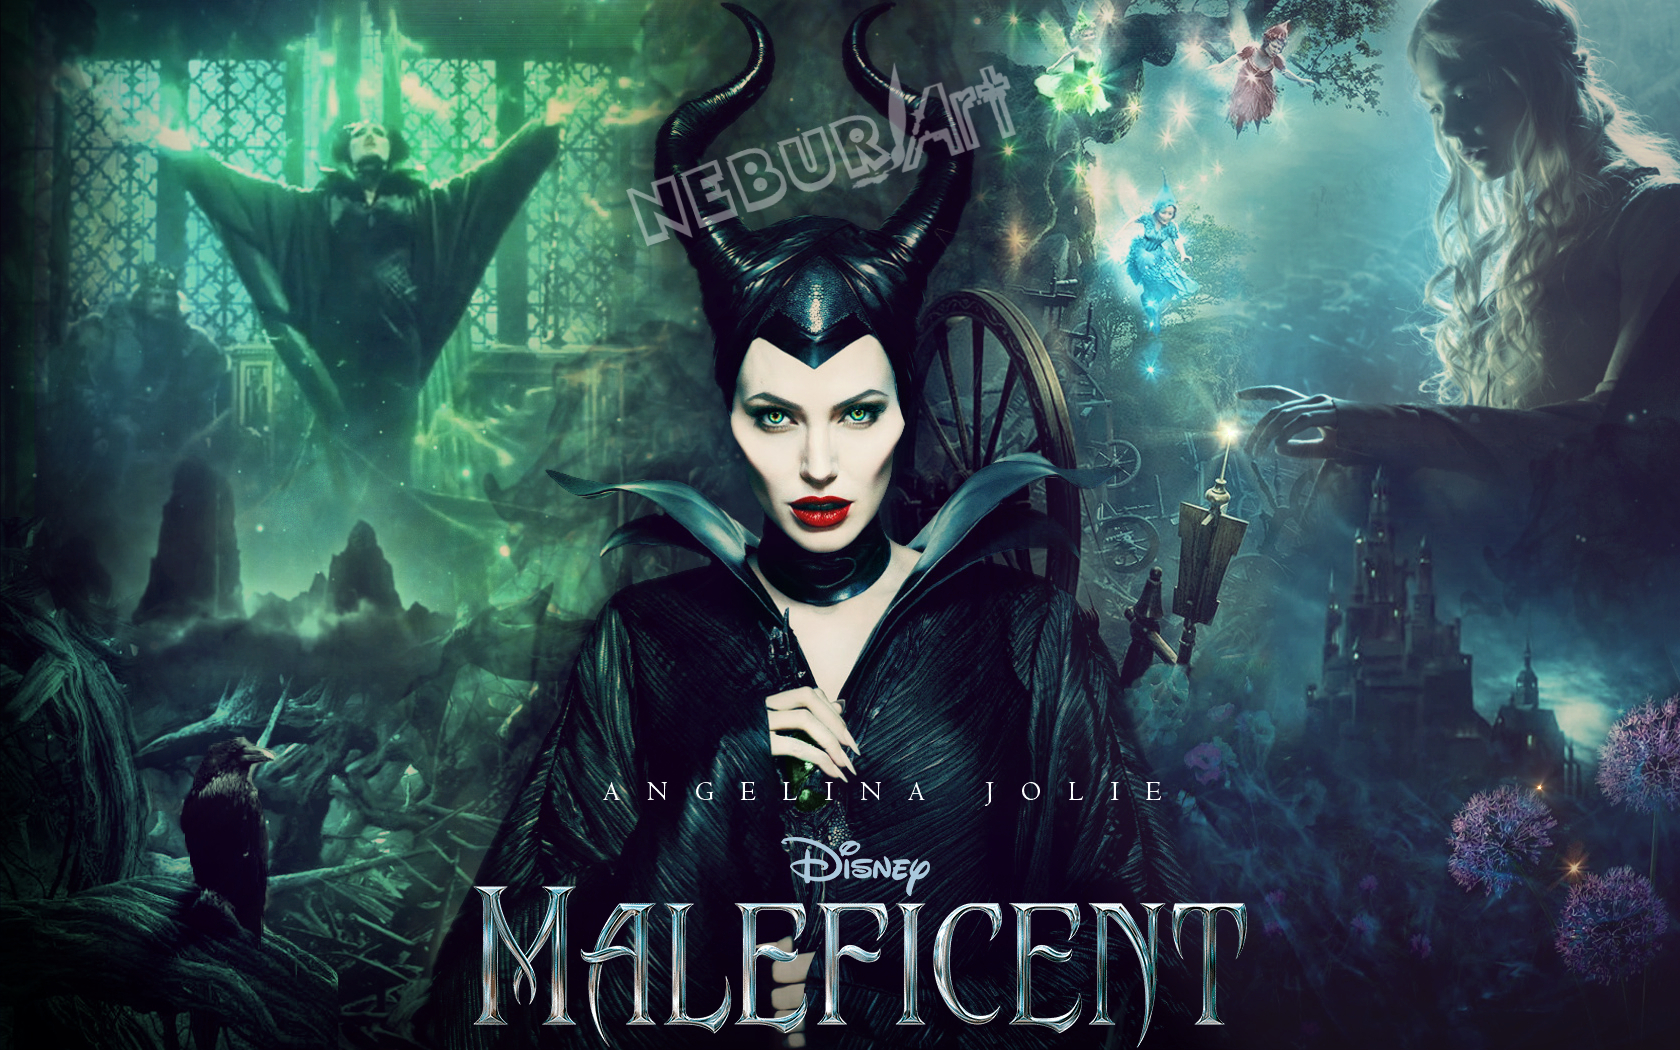 Maleficent Wallpaper English by NeburArt on DeviantArt